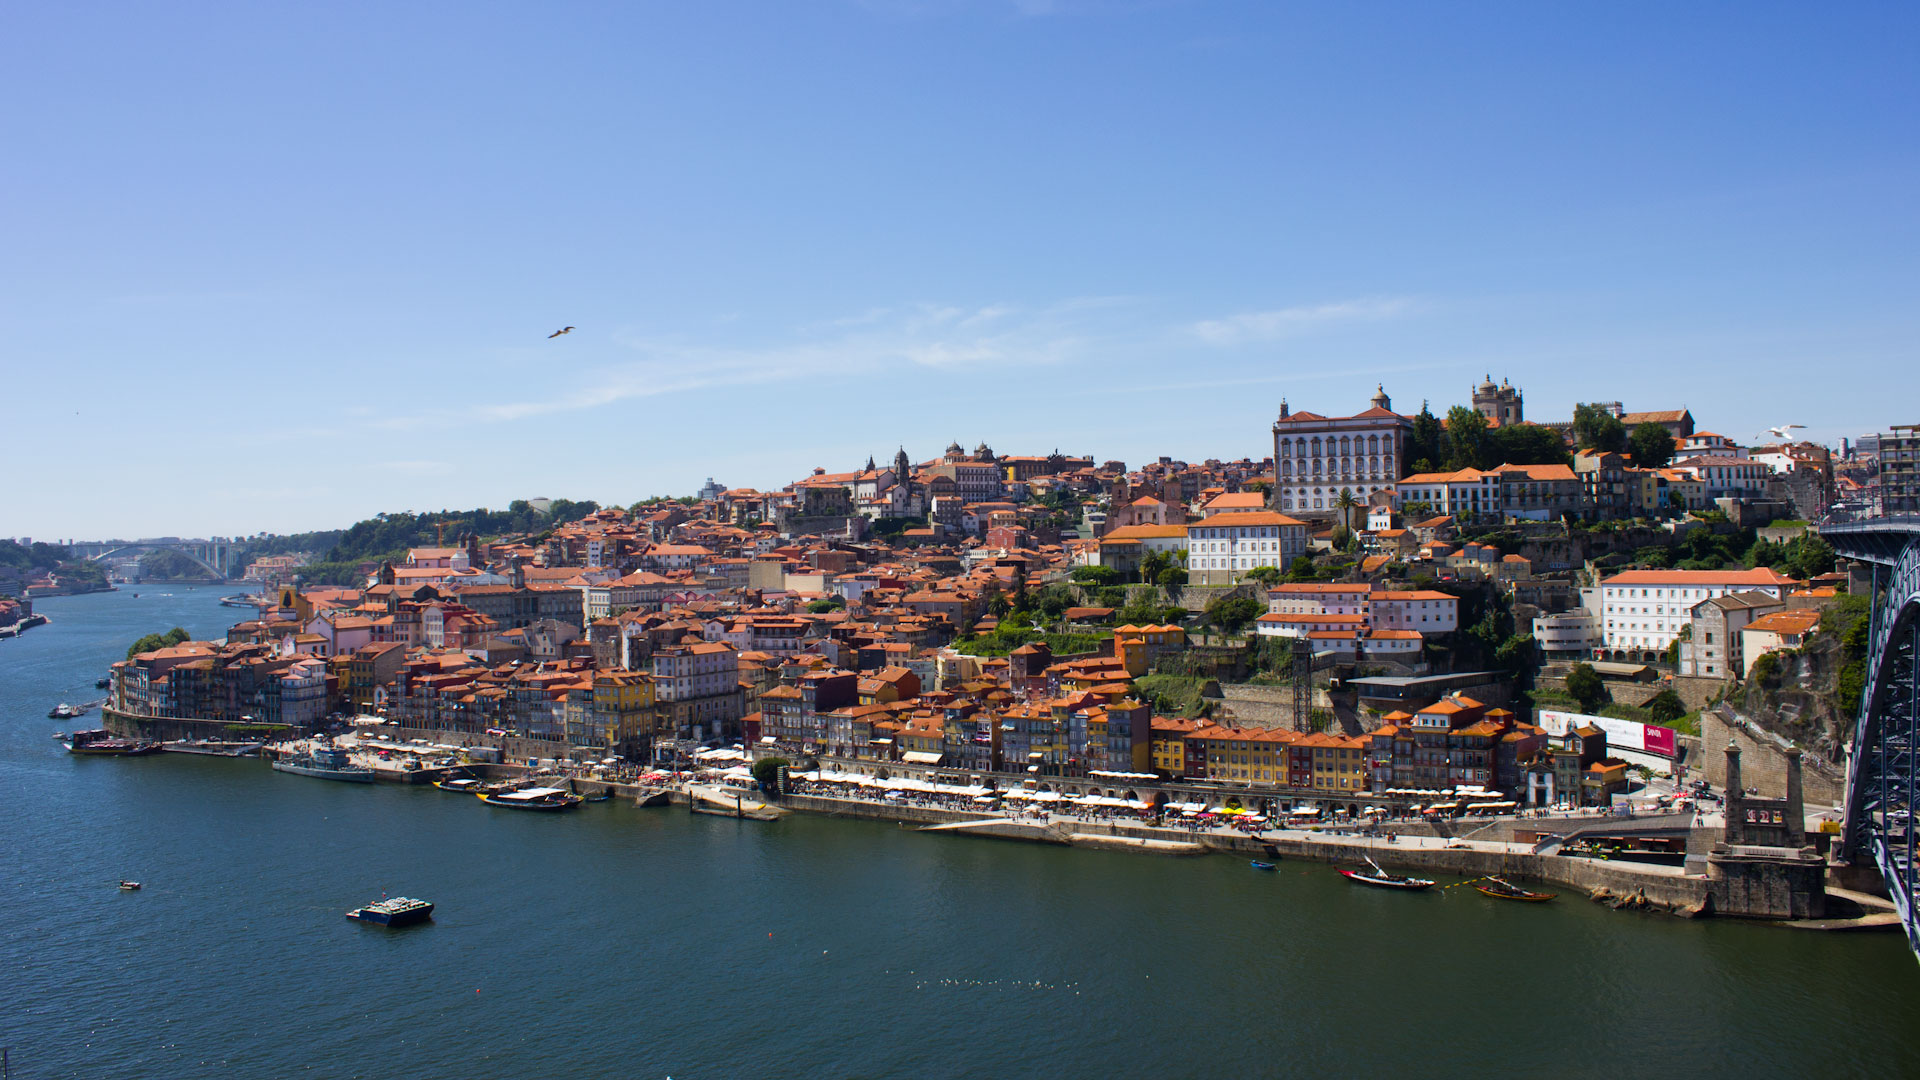 Overview of the historic center of Porto